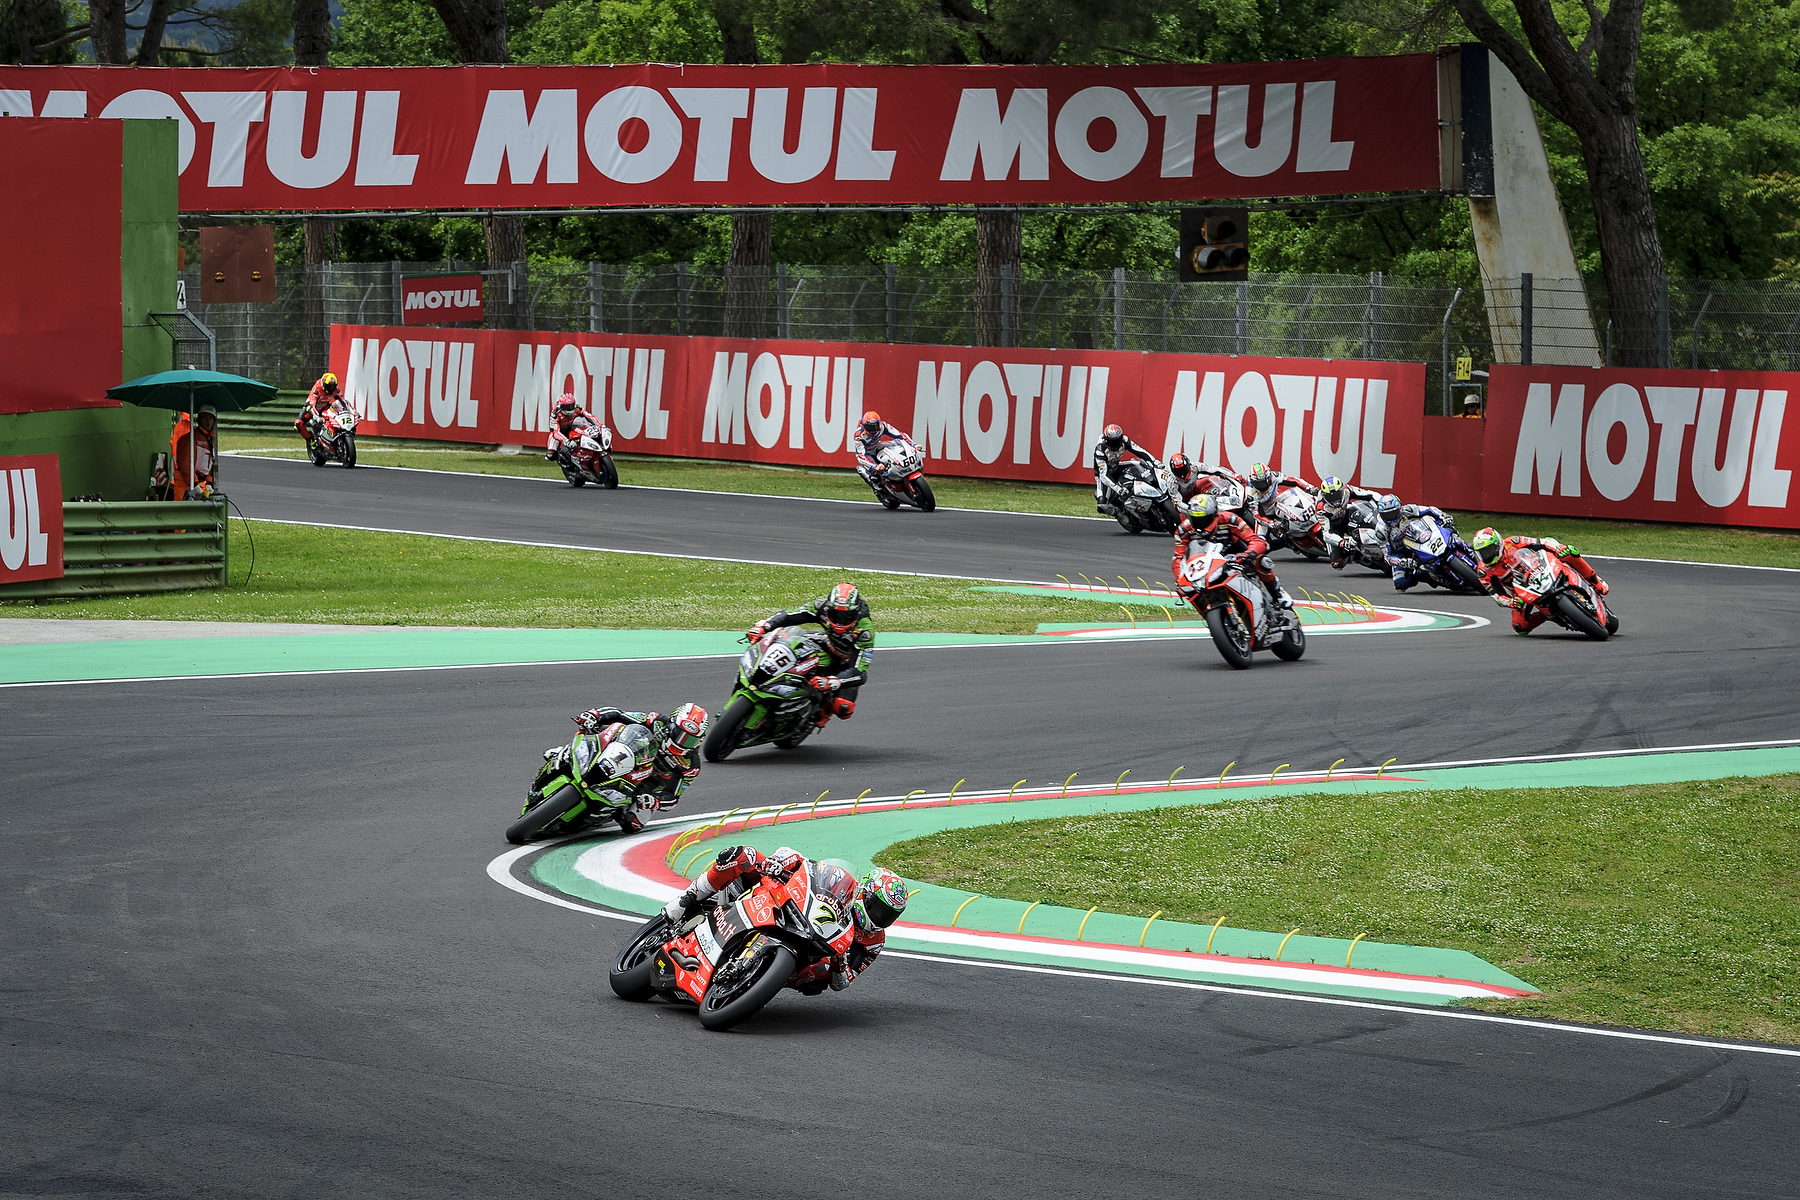 027_R05_Imola_gallery